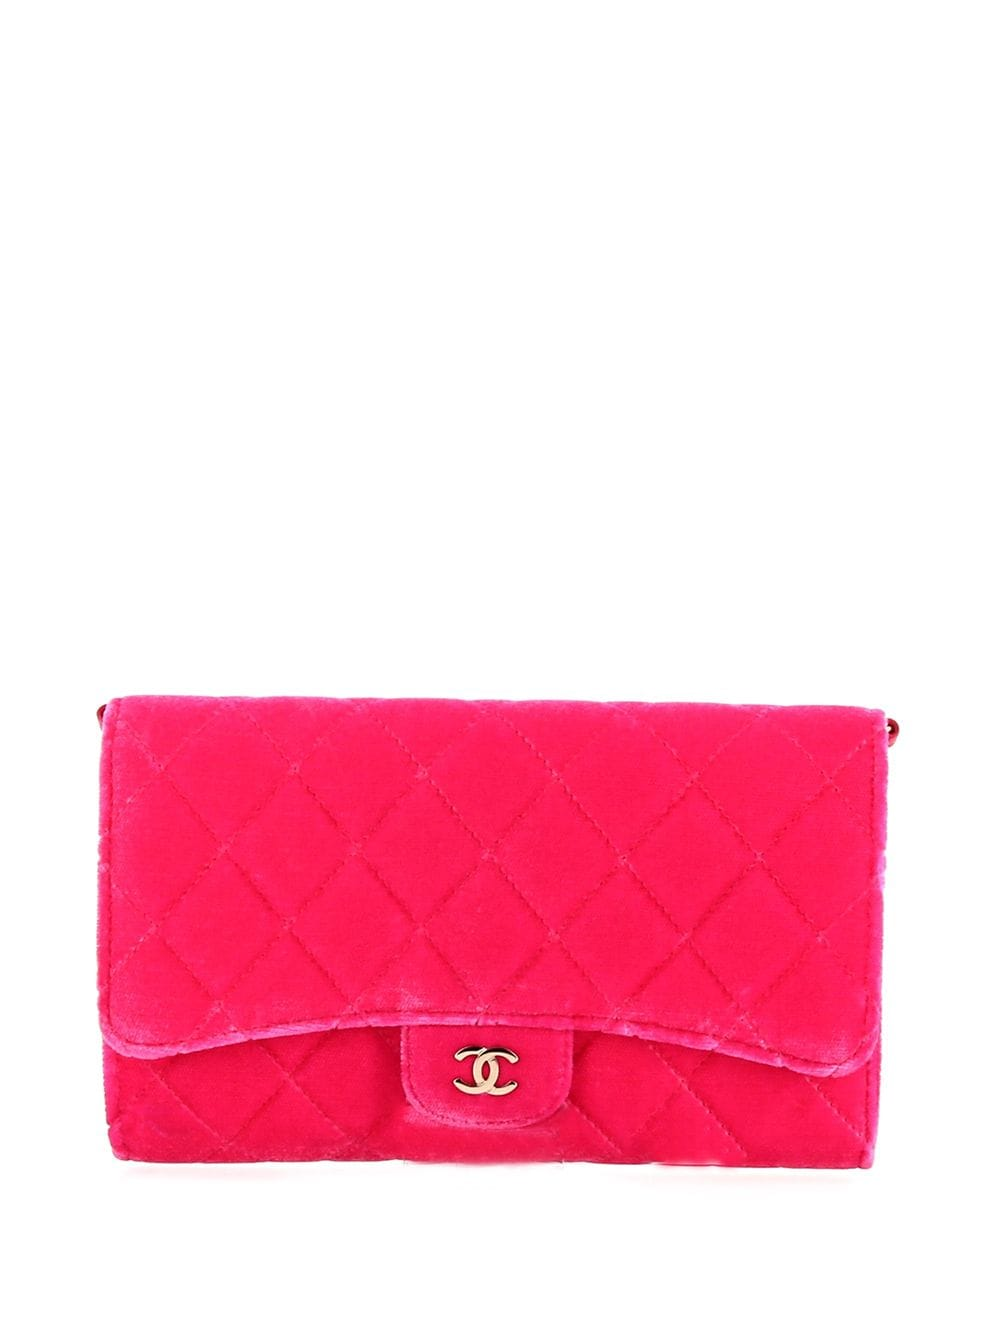 Chanel Pre-Owned 2015 Timeless Clutch mit Rautensteppung - PINK